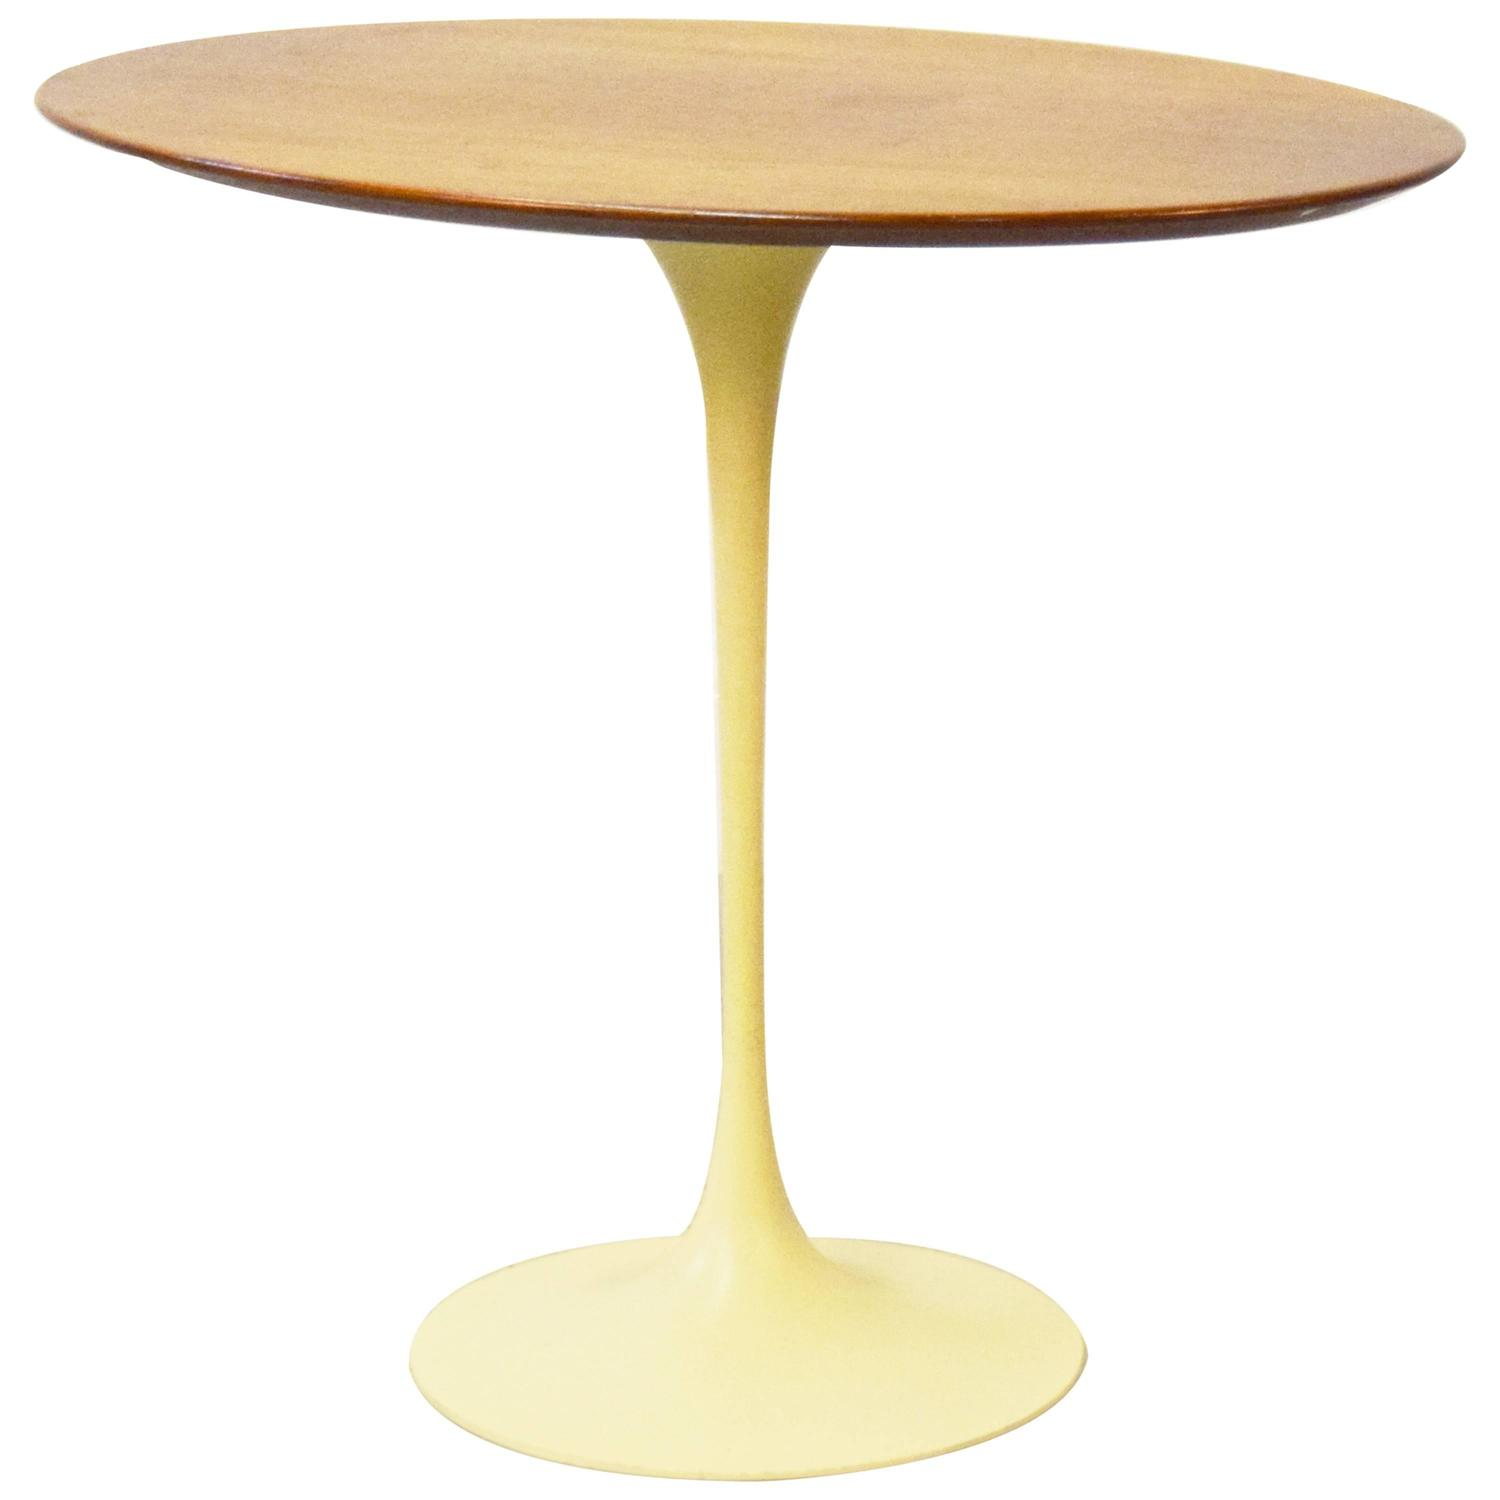 early eero saarinen for knoll oval tulip side table for sale at 1stdibs. Black Bedroom Furniture Sets. Home Design Ideas